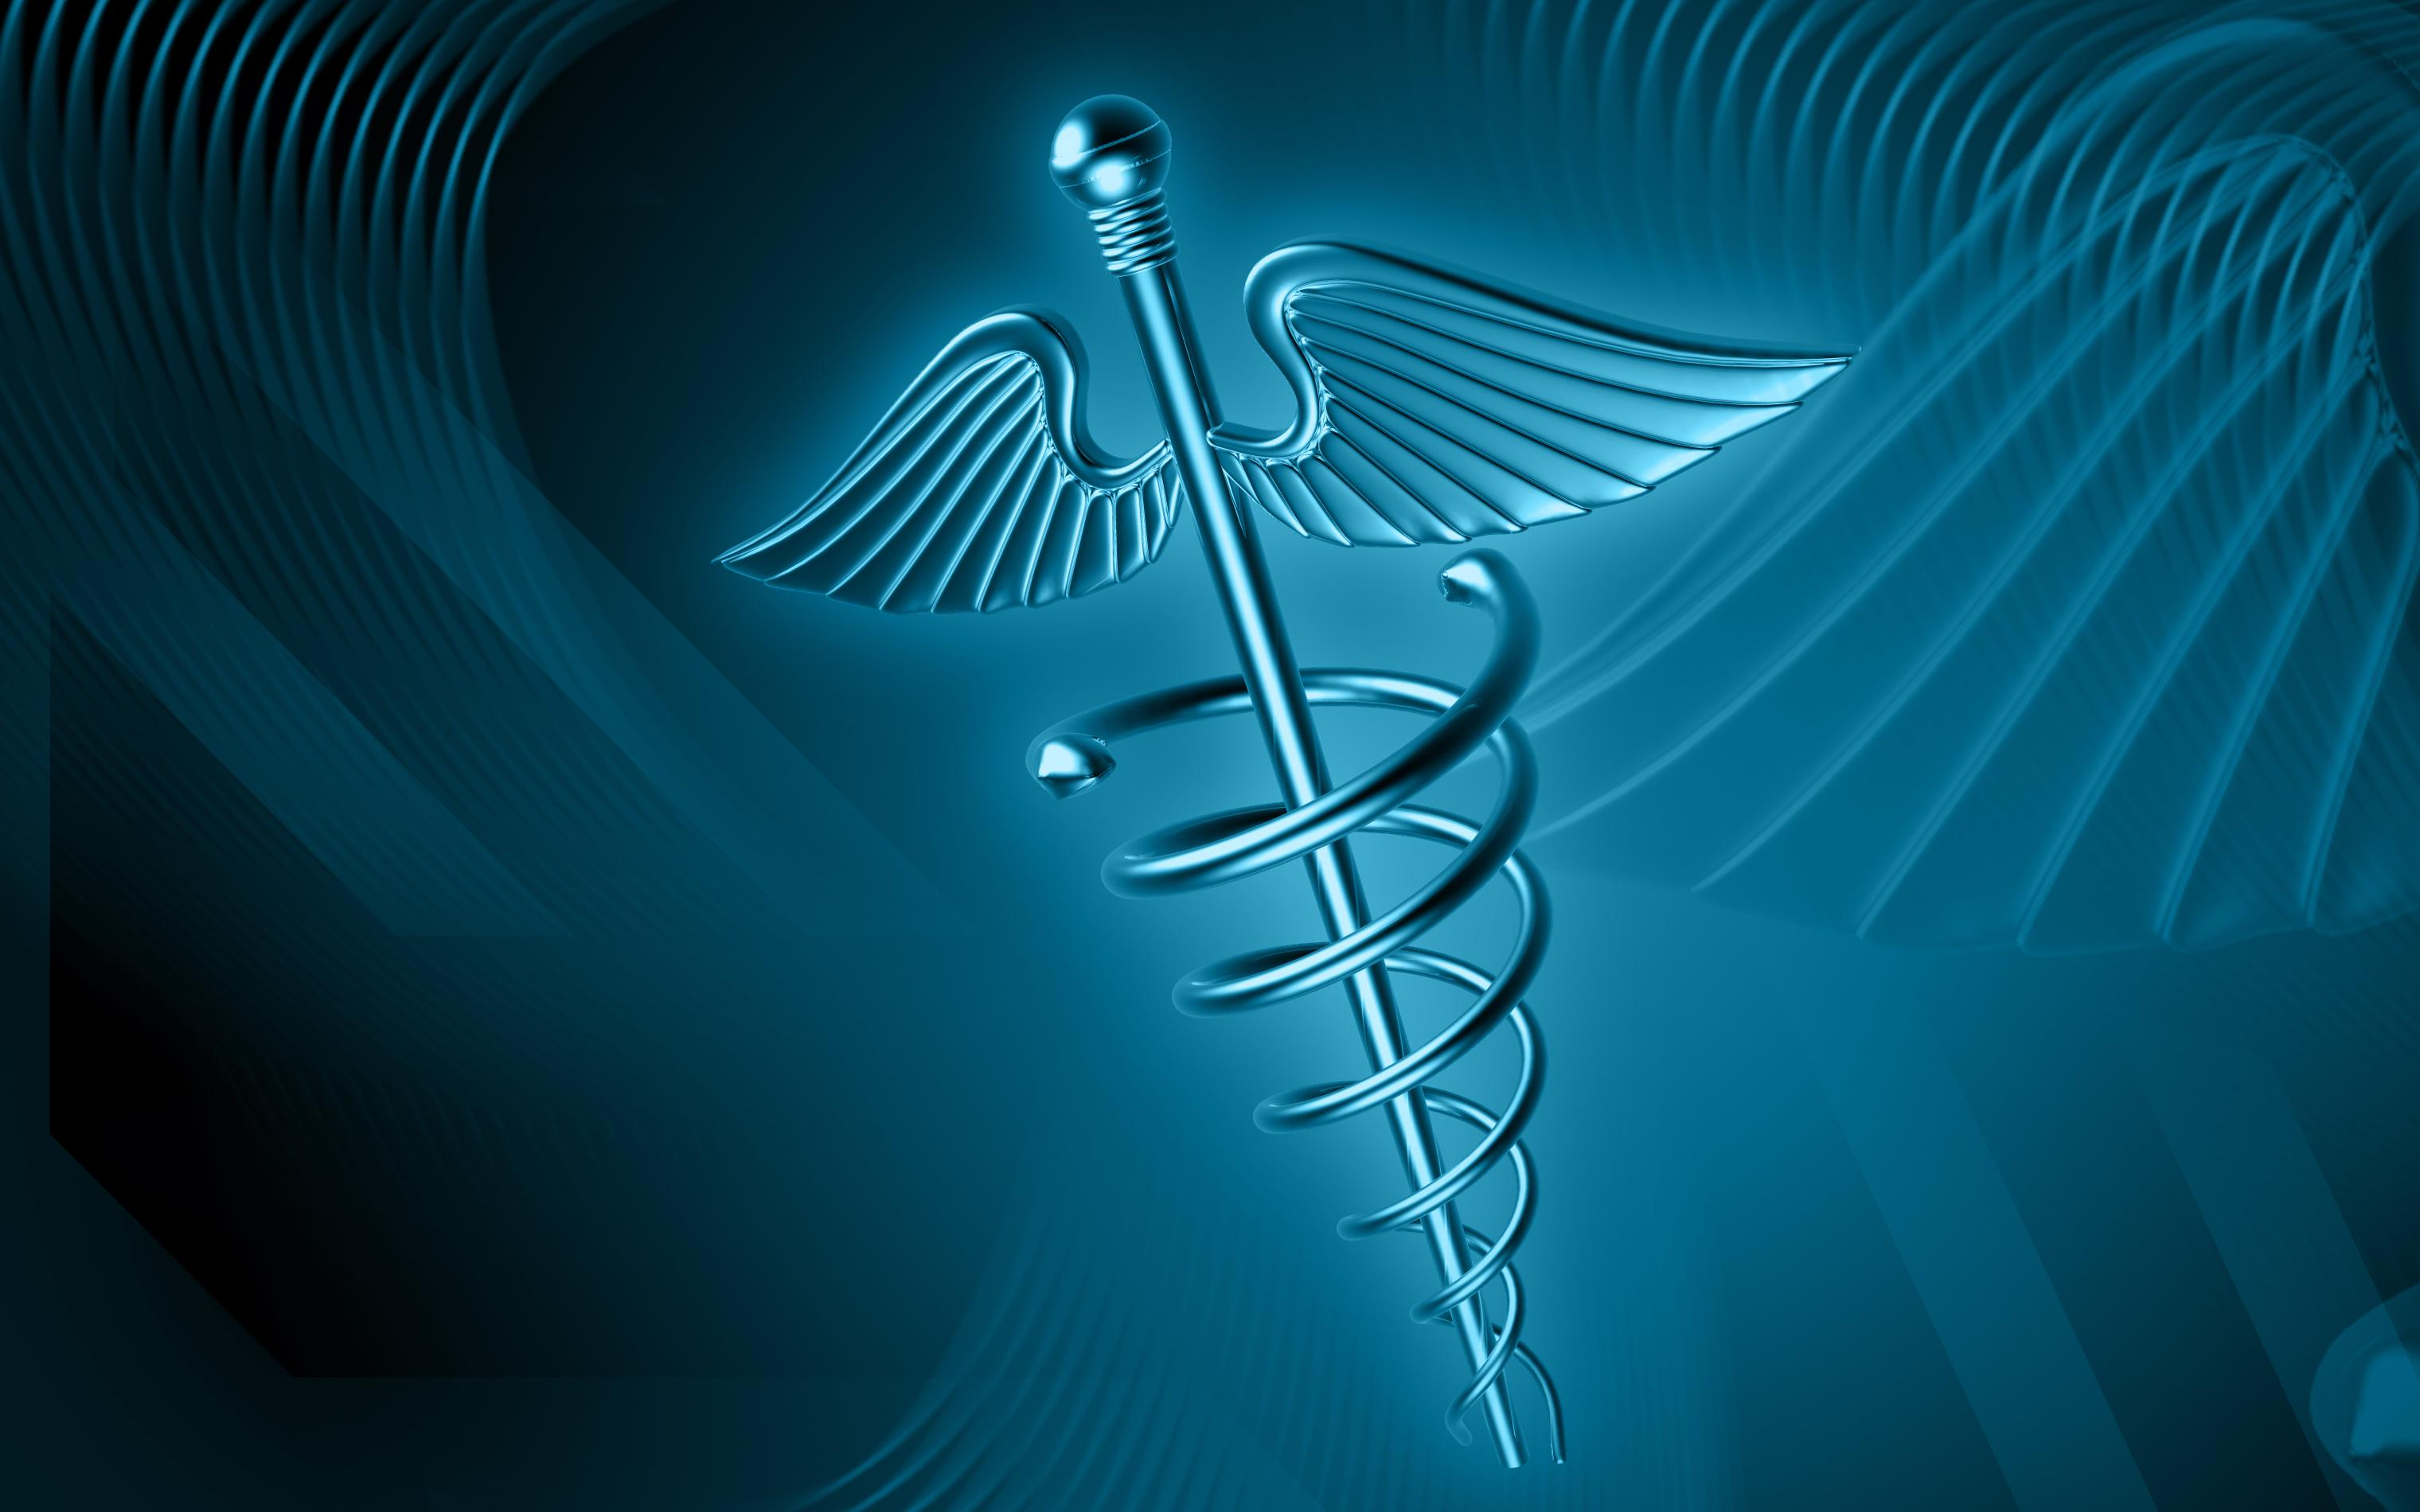 Medical Desktop Backgrounds - WallpaperSafari